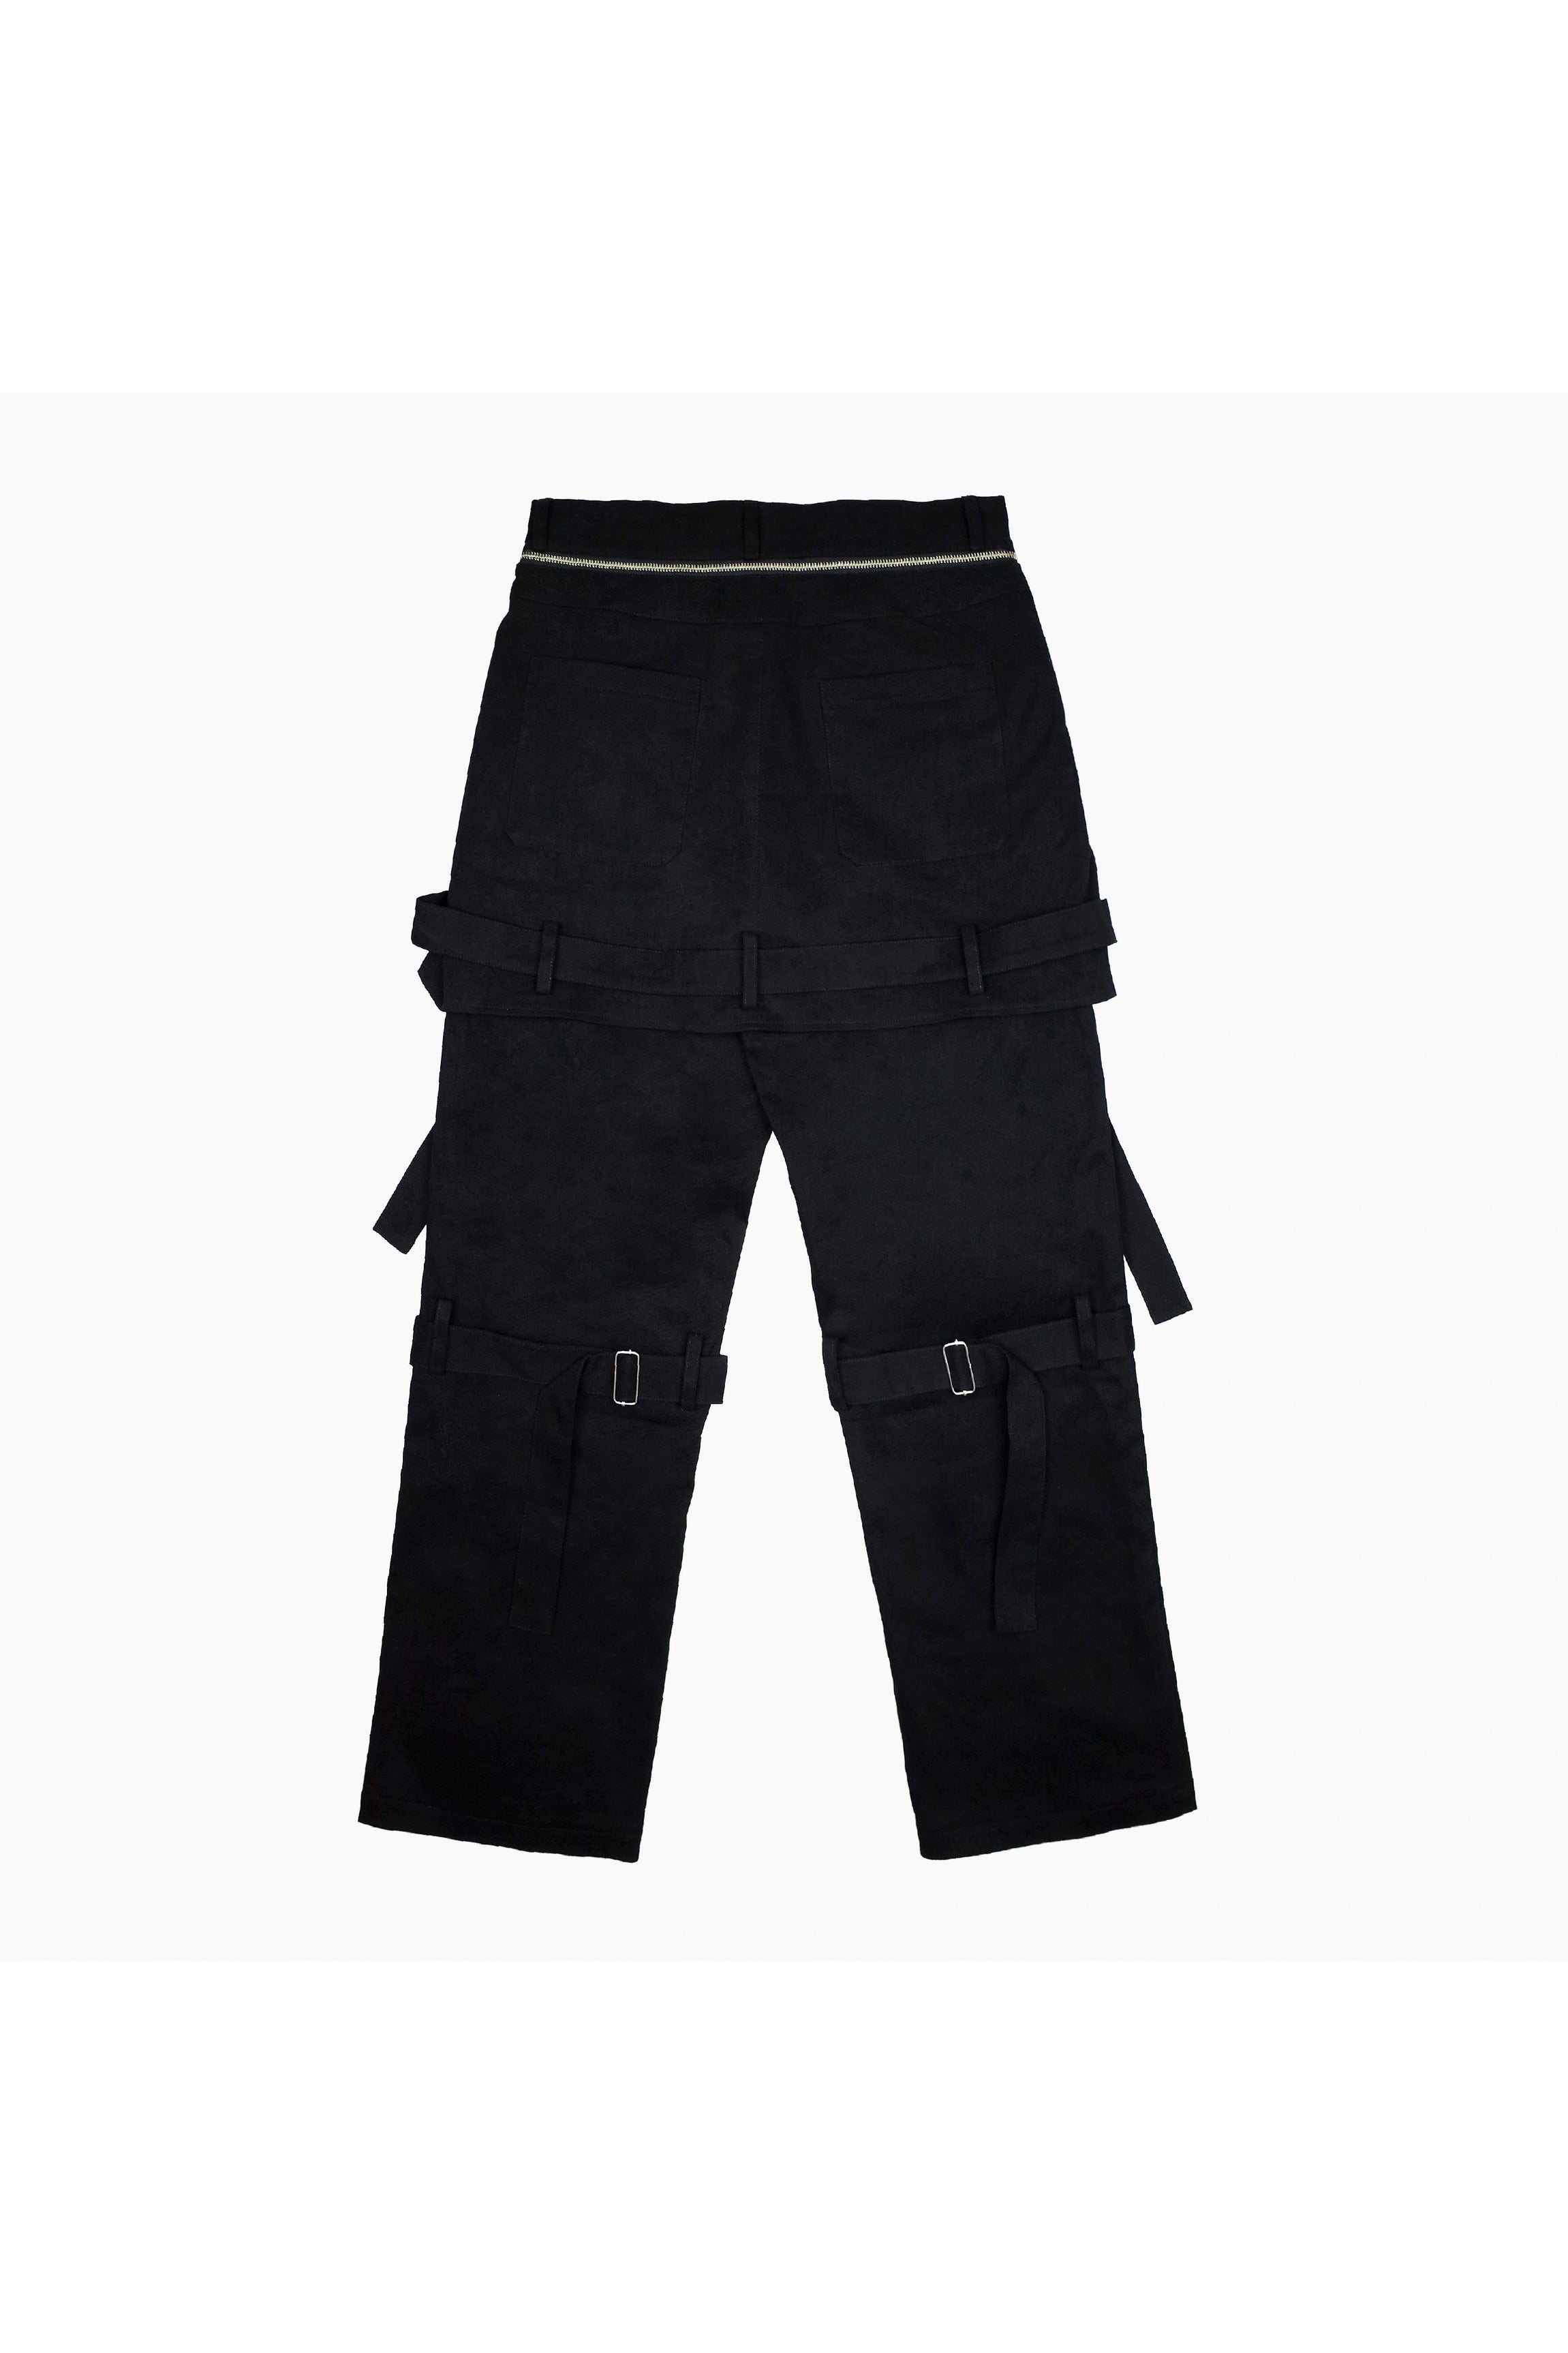 Empty Reference Zip Pants